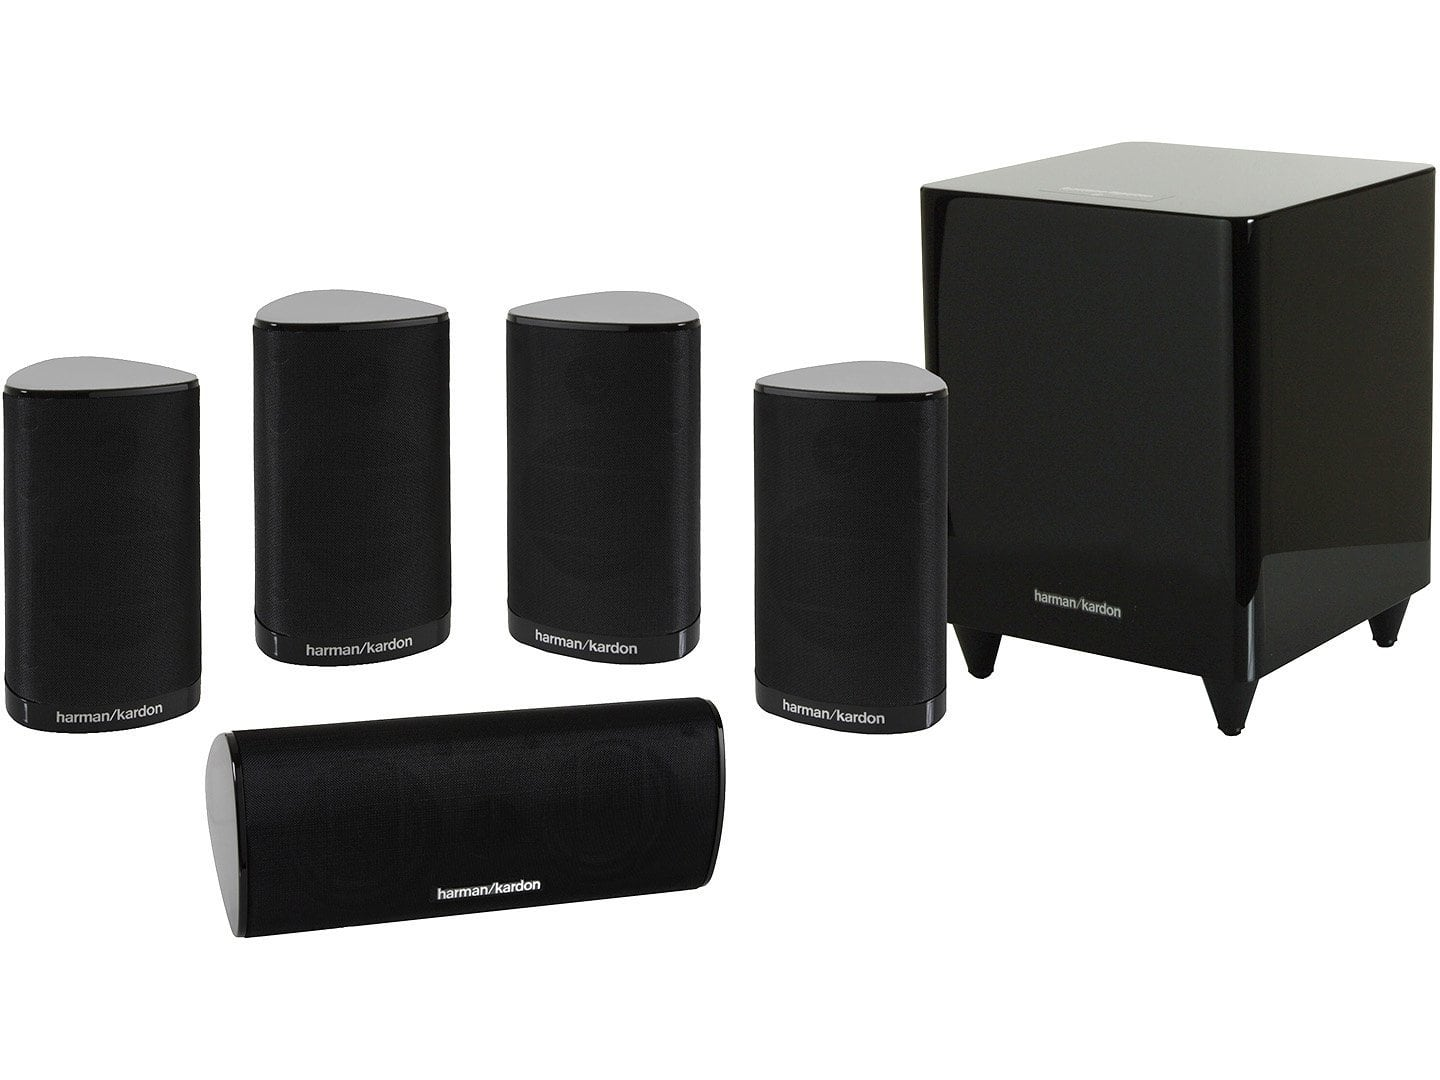 harman kardon hkts 9bq 5 1 channel home theatre speaker. Black Bedroom Furniture Sets. Home Design Ideas